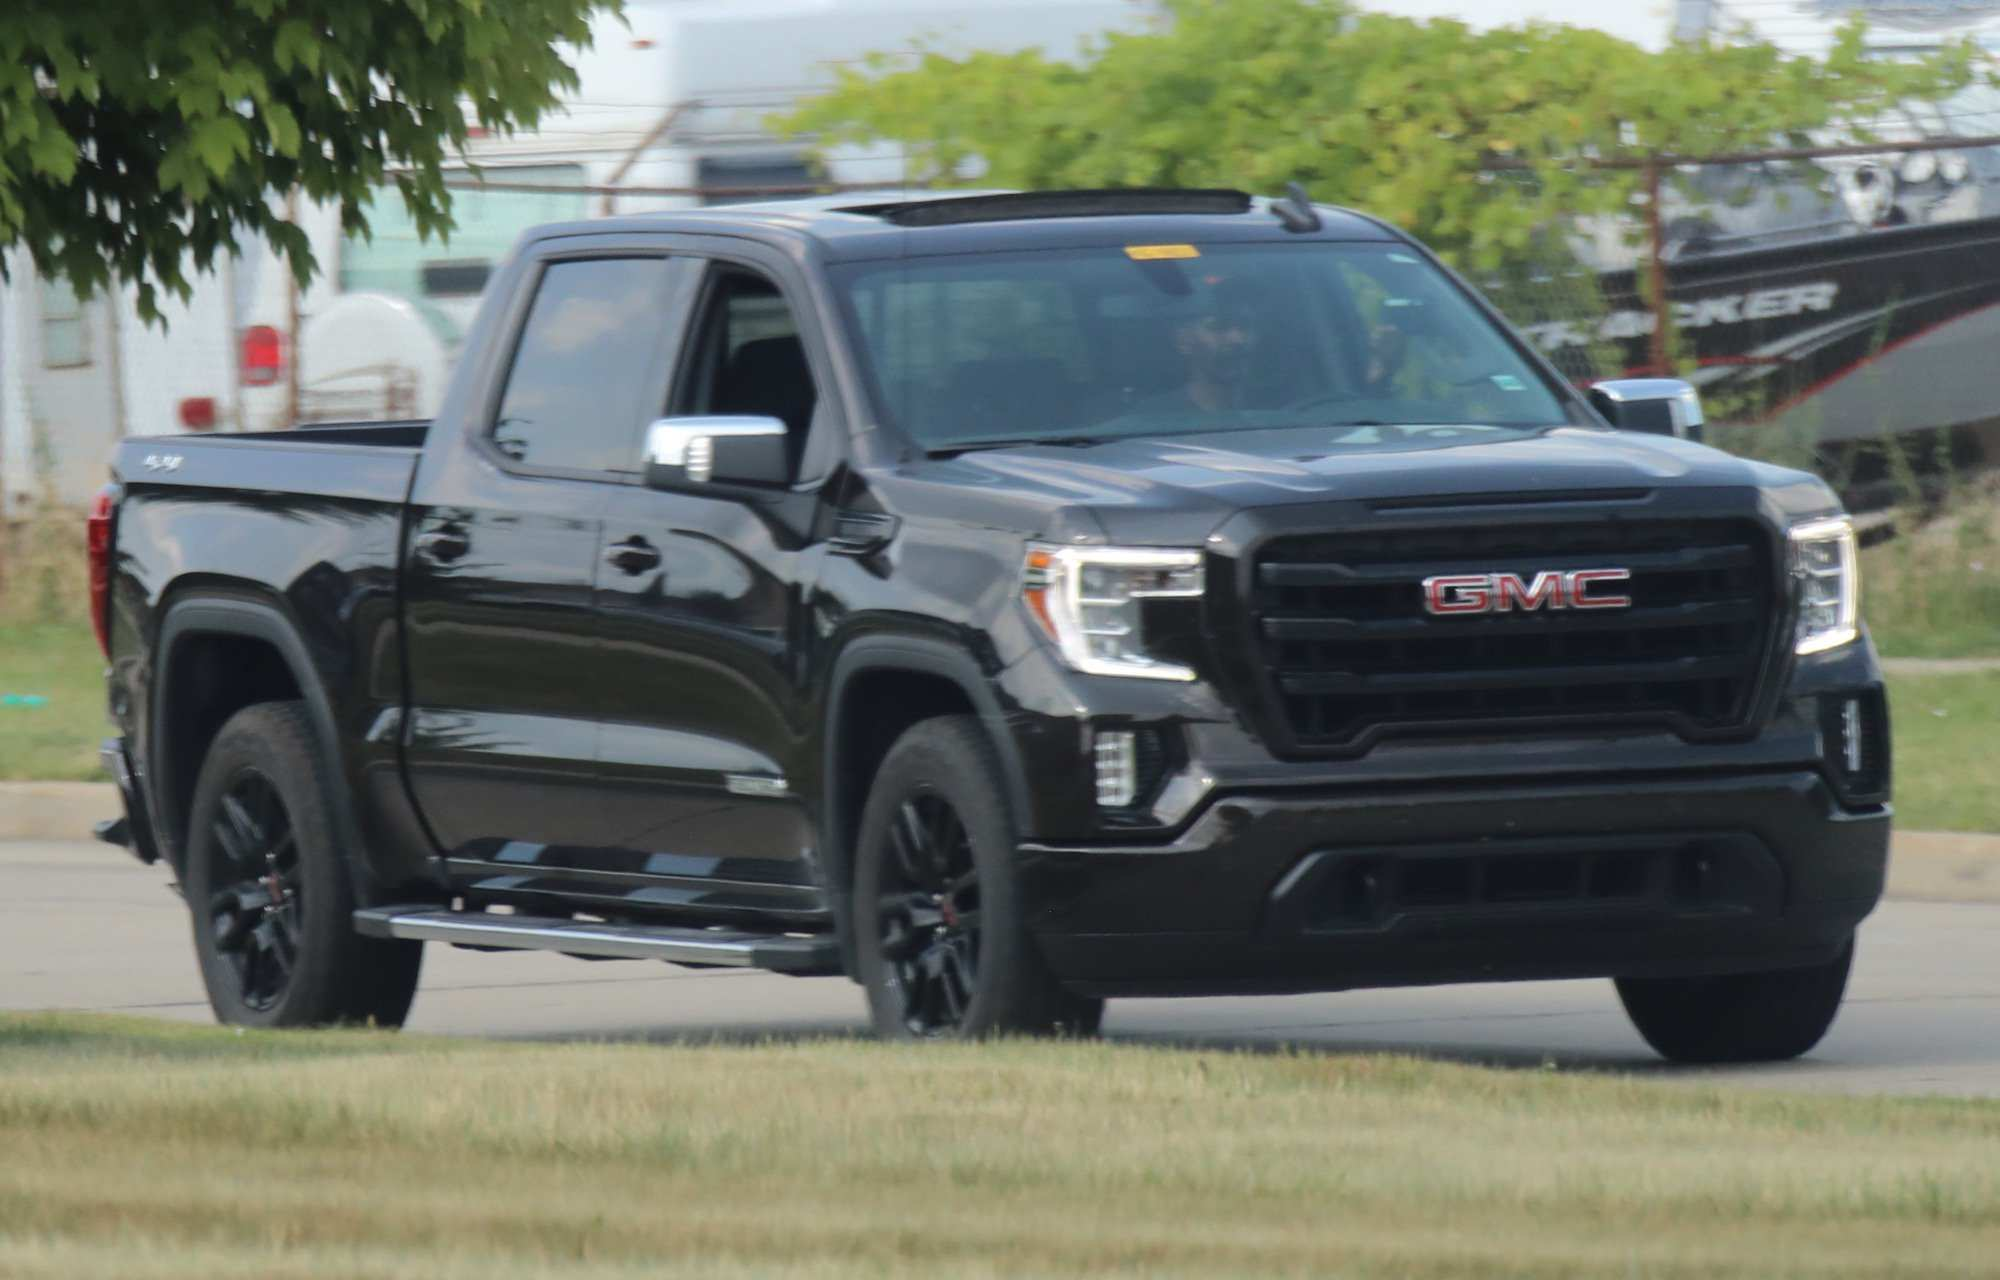 36 All New 2019 Gmc Sierra Release Date Concept And Review